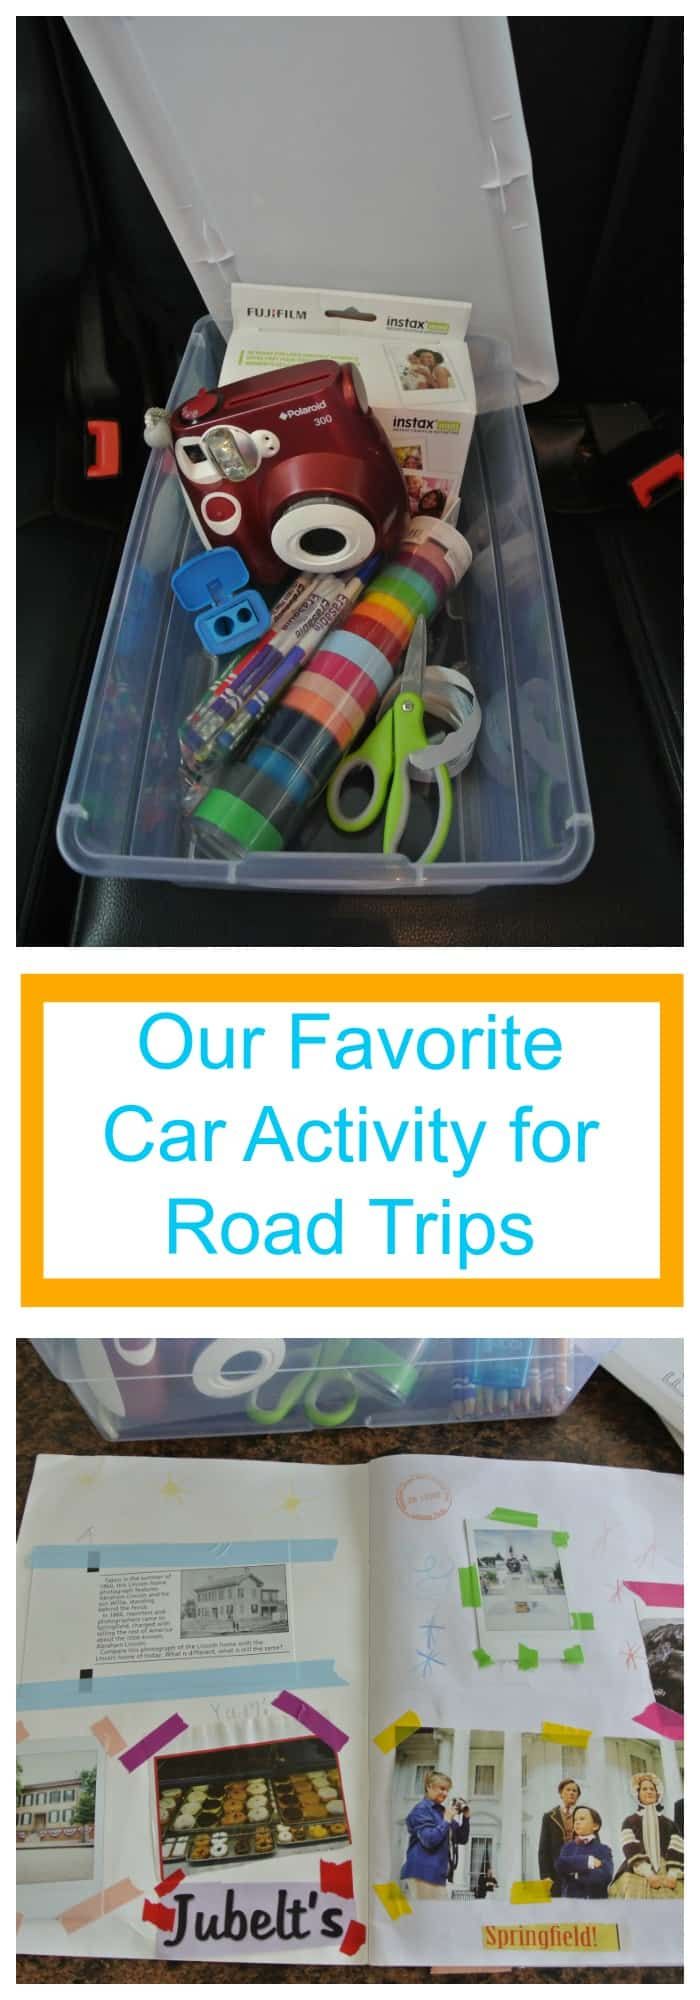 Travel--Our Favorite Car Activity for Road Trips--The Organized Mom